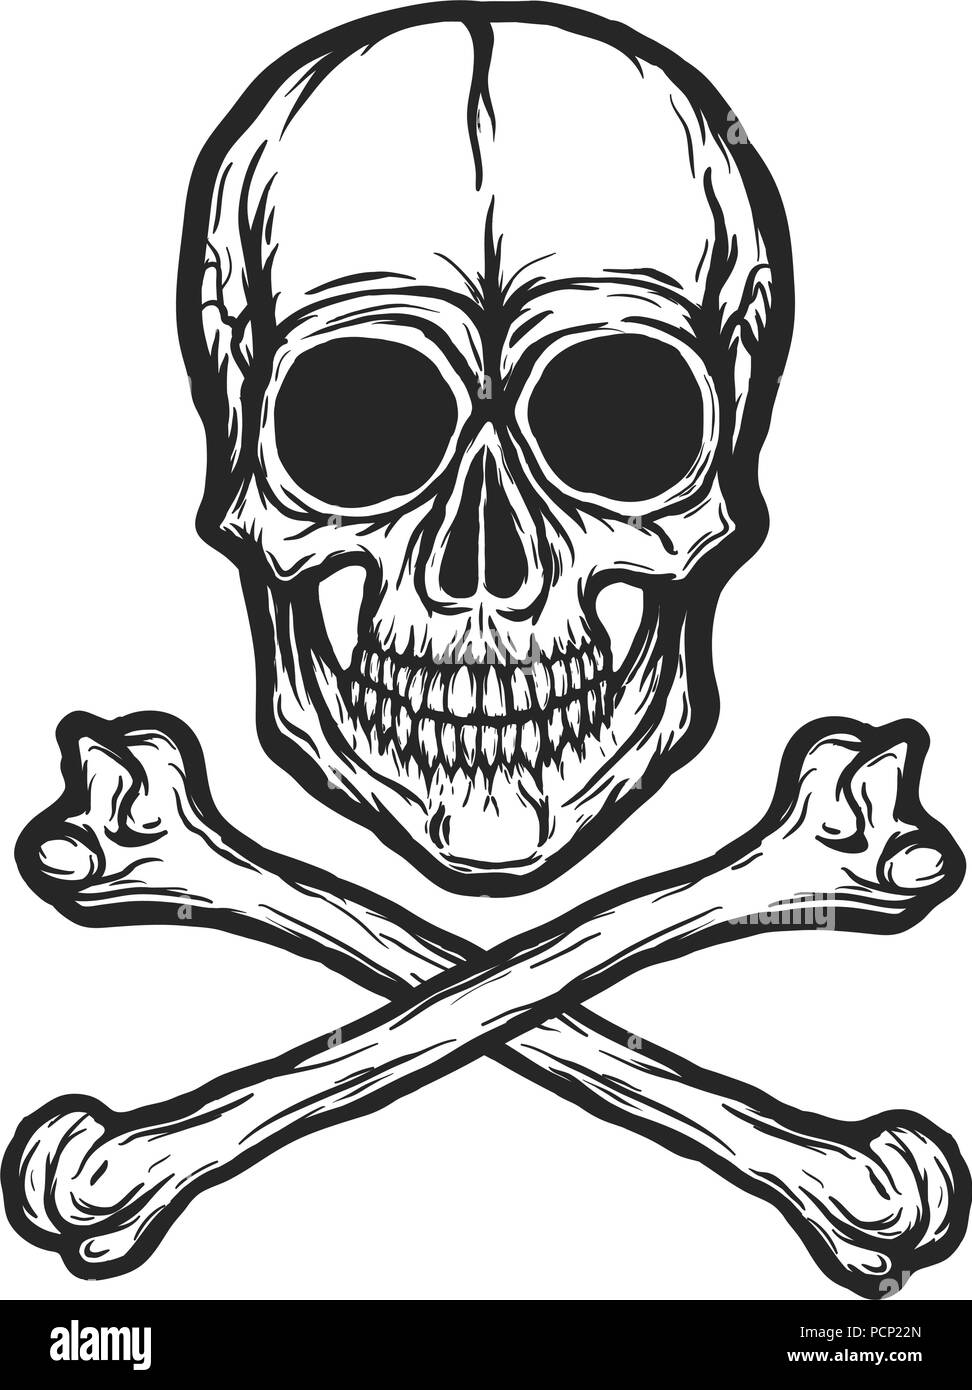 8c56d3163a0af Skull Tattoo Black and White Stock Photos & Images - Alamy